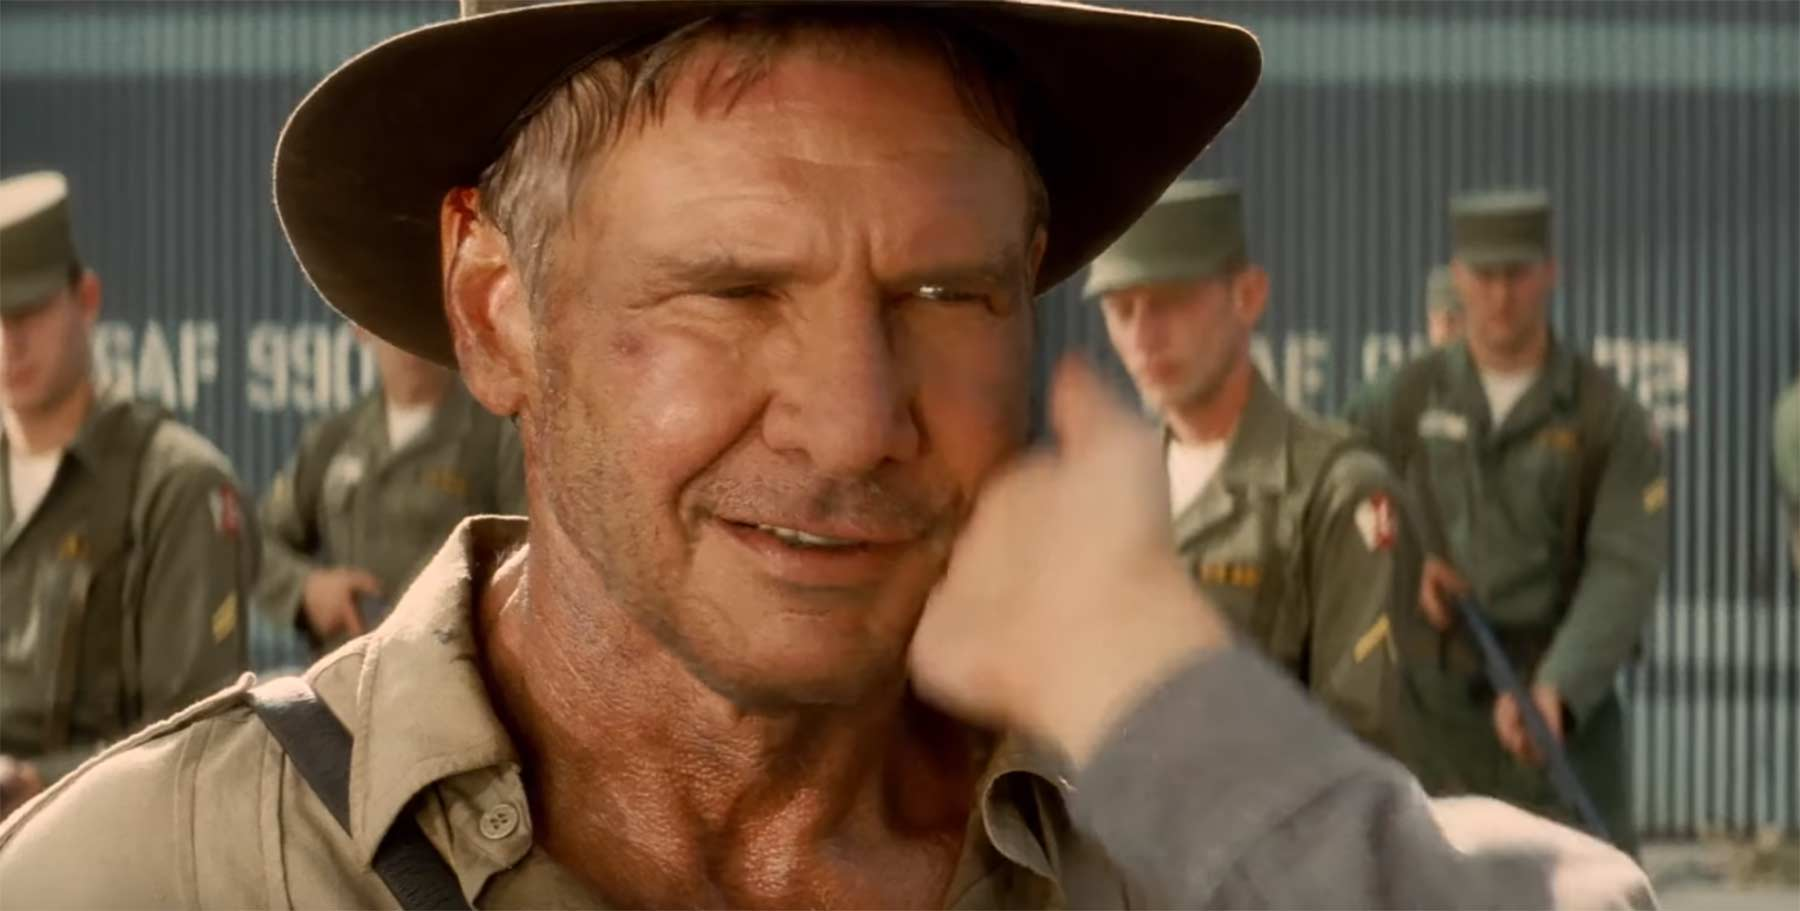 Remix aus Indiana Jones-Soundeffekten indiana-jones-sound-remix